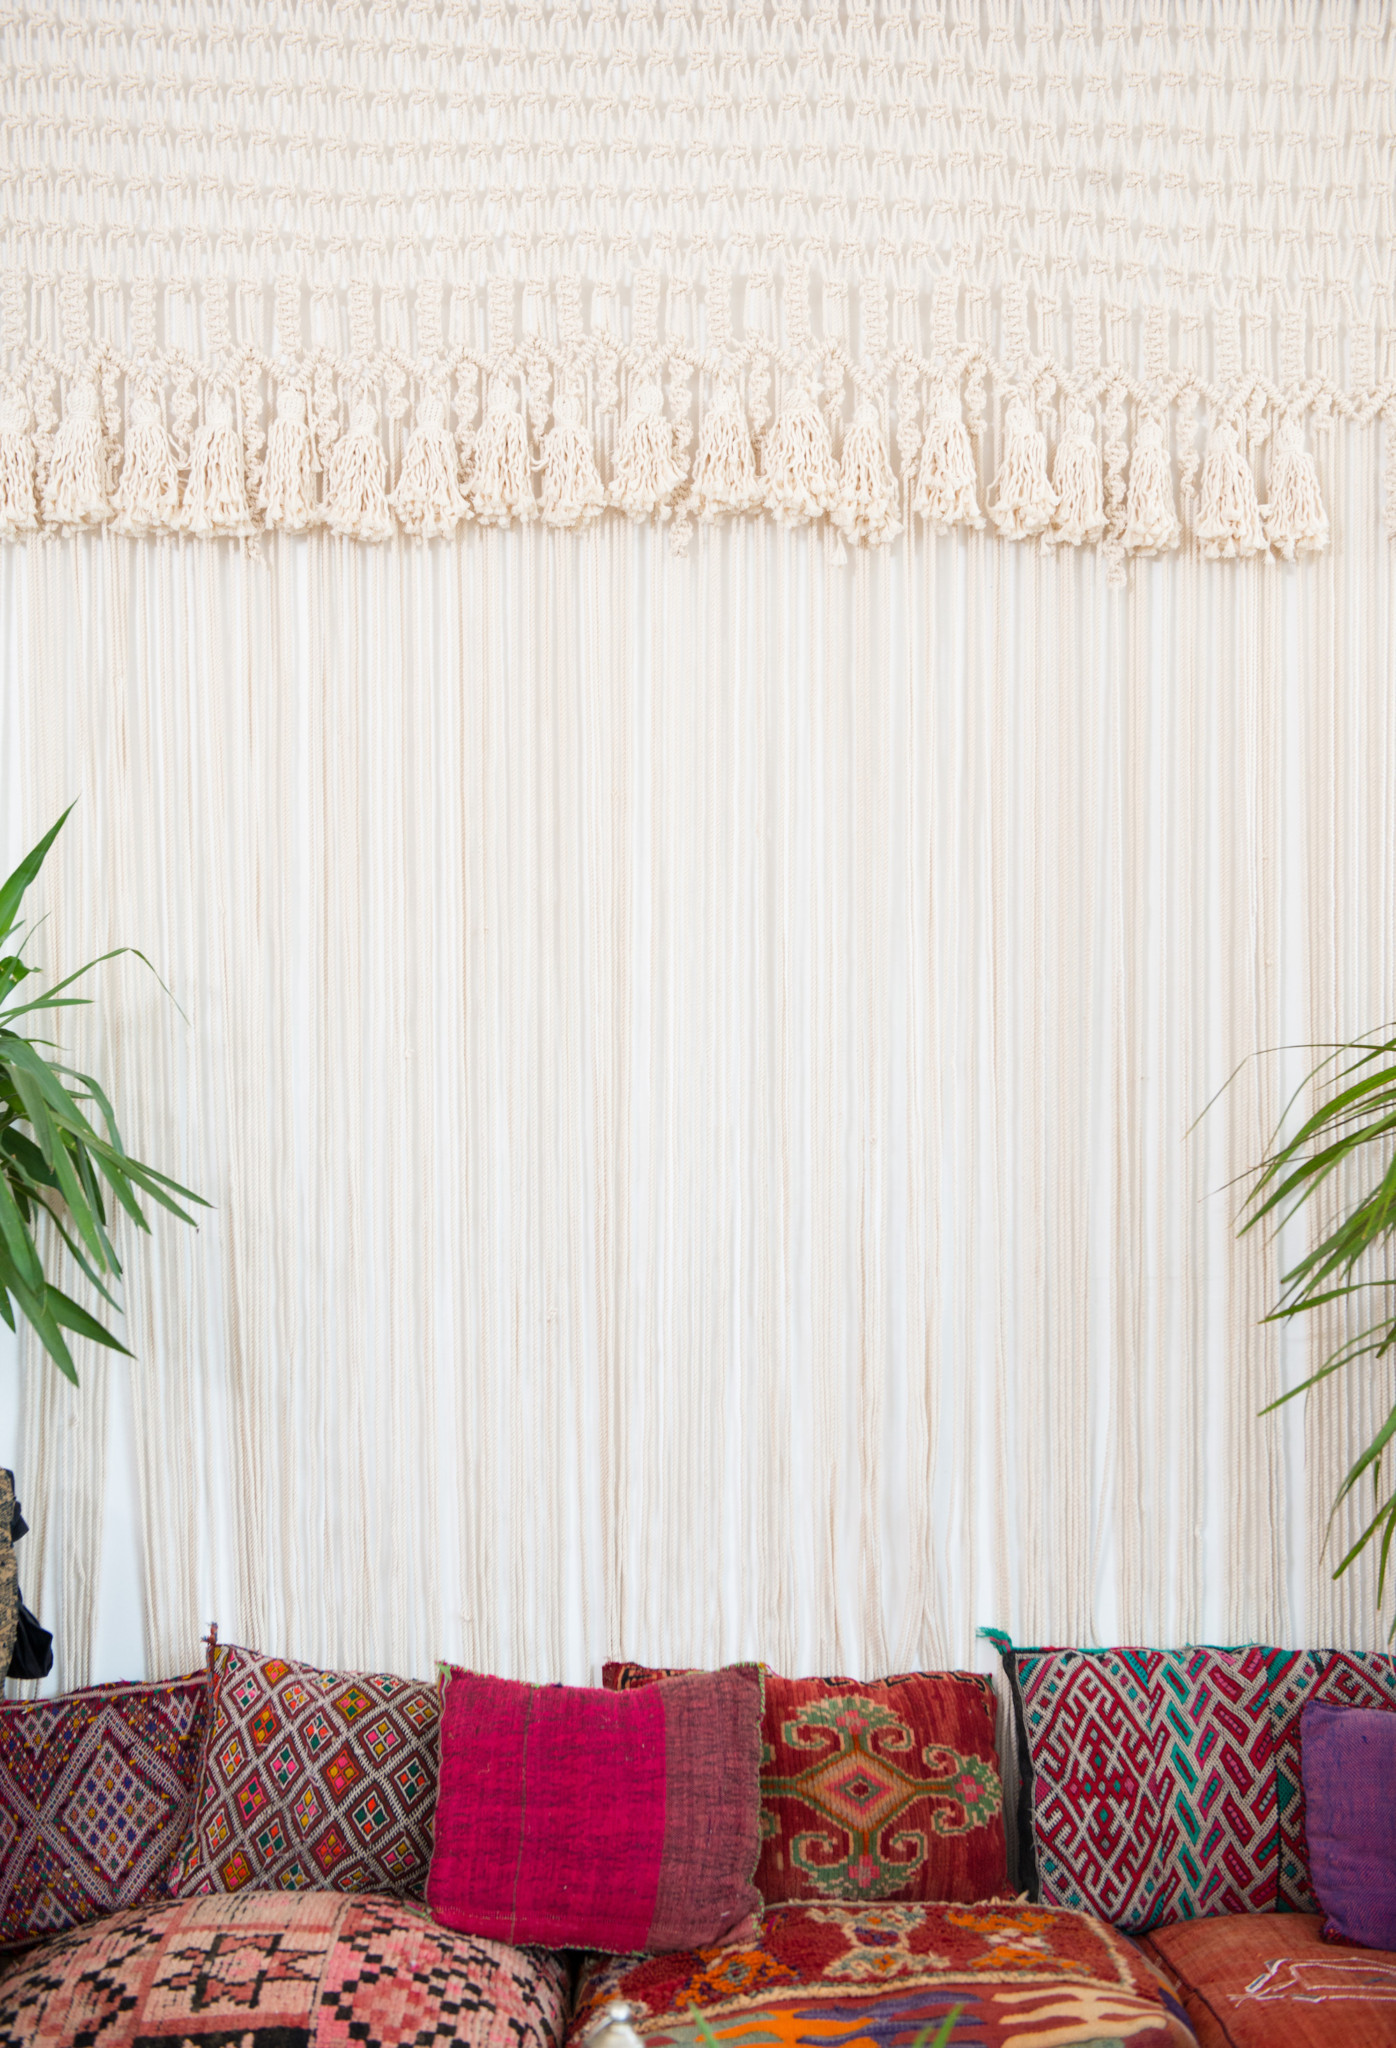 best pinterest bohemian shoot table images philadelphia rentals maggpierentals pillows styled photoshoot cushionslounge lounge brass maggpie inspired pillow on tablefloor macrame cushions moroccan floor